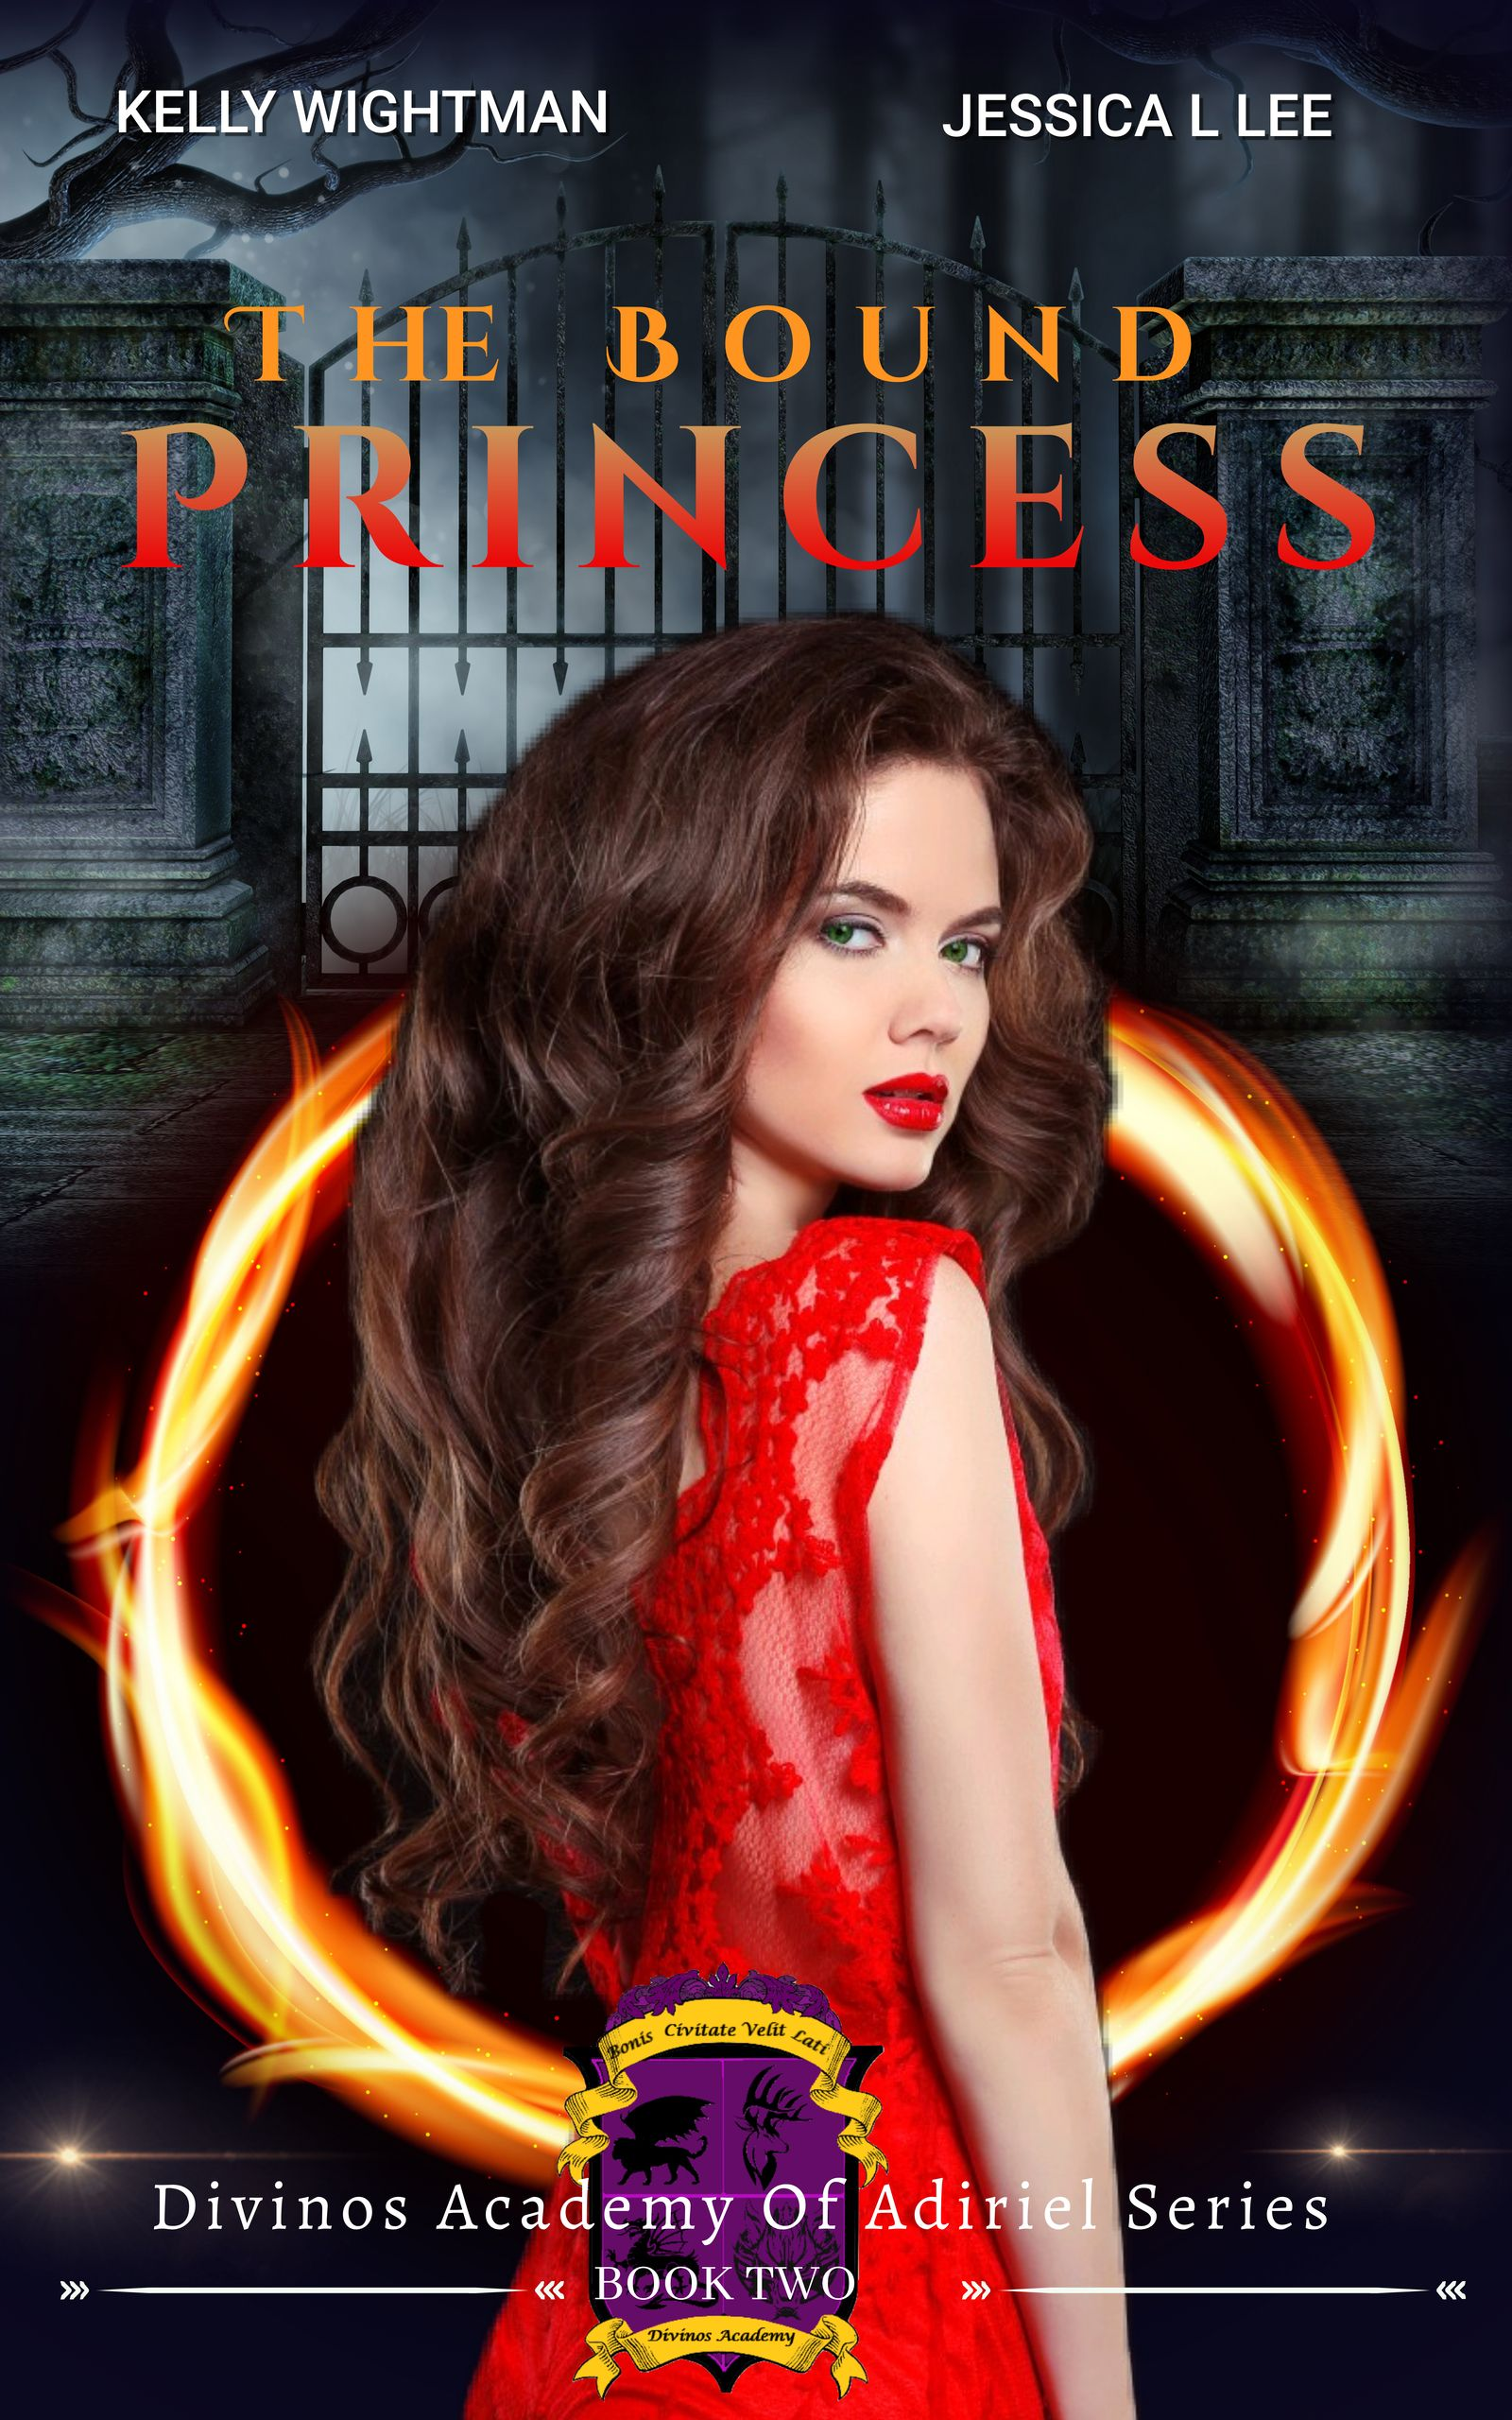 The Bound Princess: A Fantasy Academy Bully Romance: (Divinos Academy of the Adiriel Series - Book 2)'s Book Image